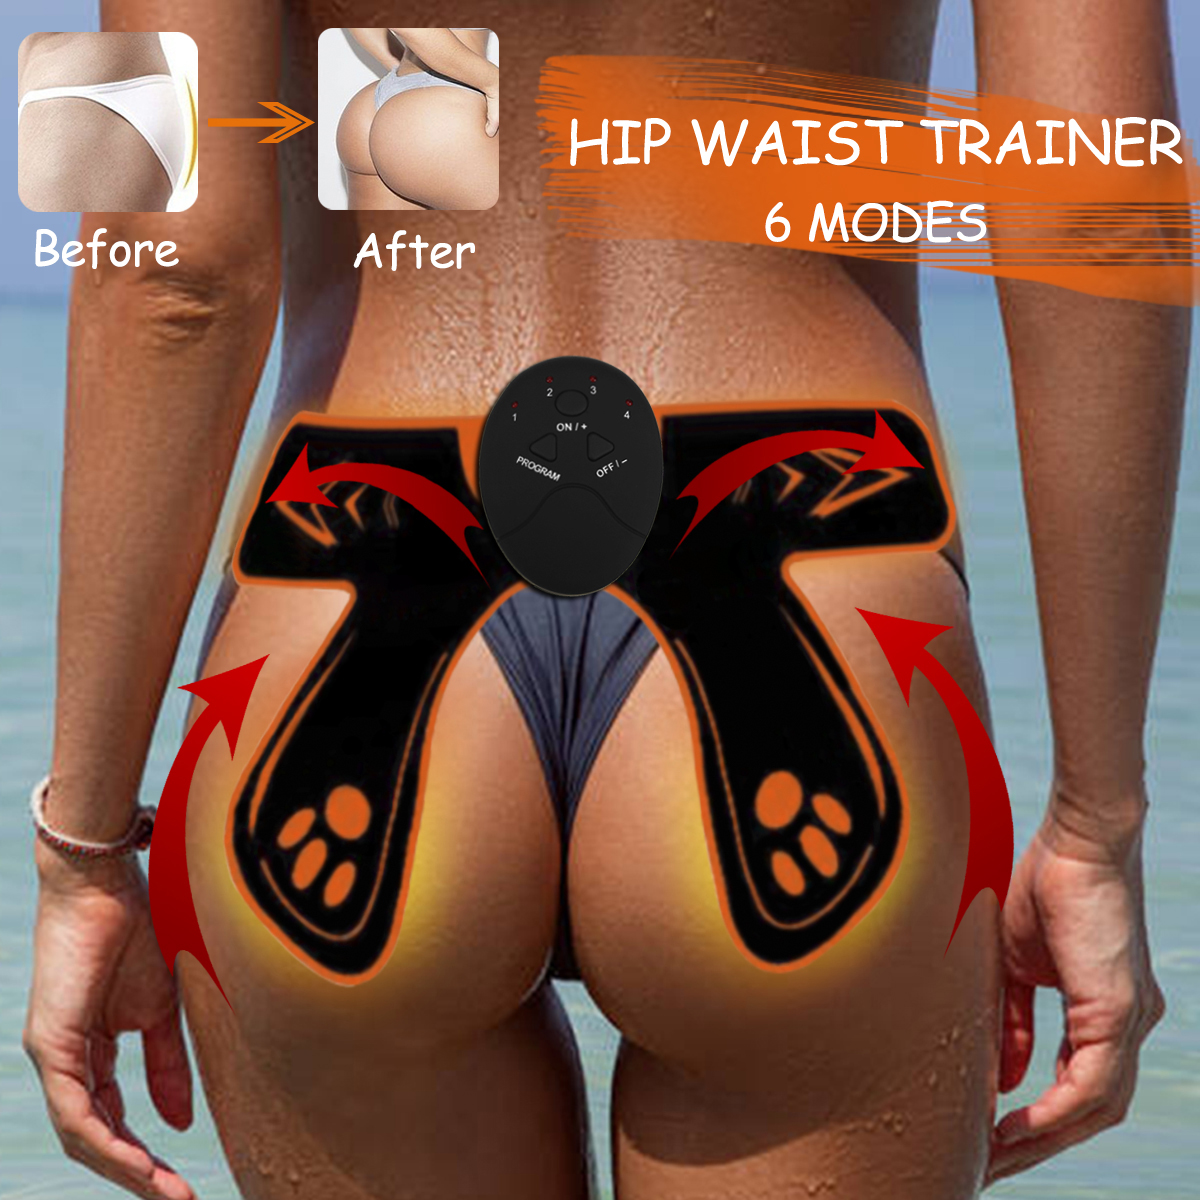 6 Modes EMS Hip Trainer, Training Booster Muscle Stimulation, Firm and Shape The Buttocks Hip Body Shaper Fitness